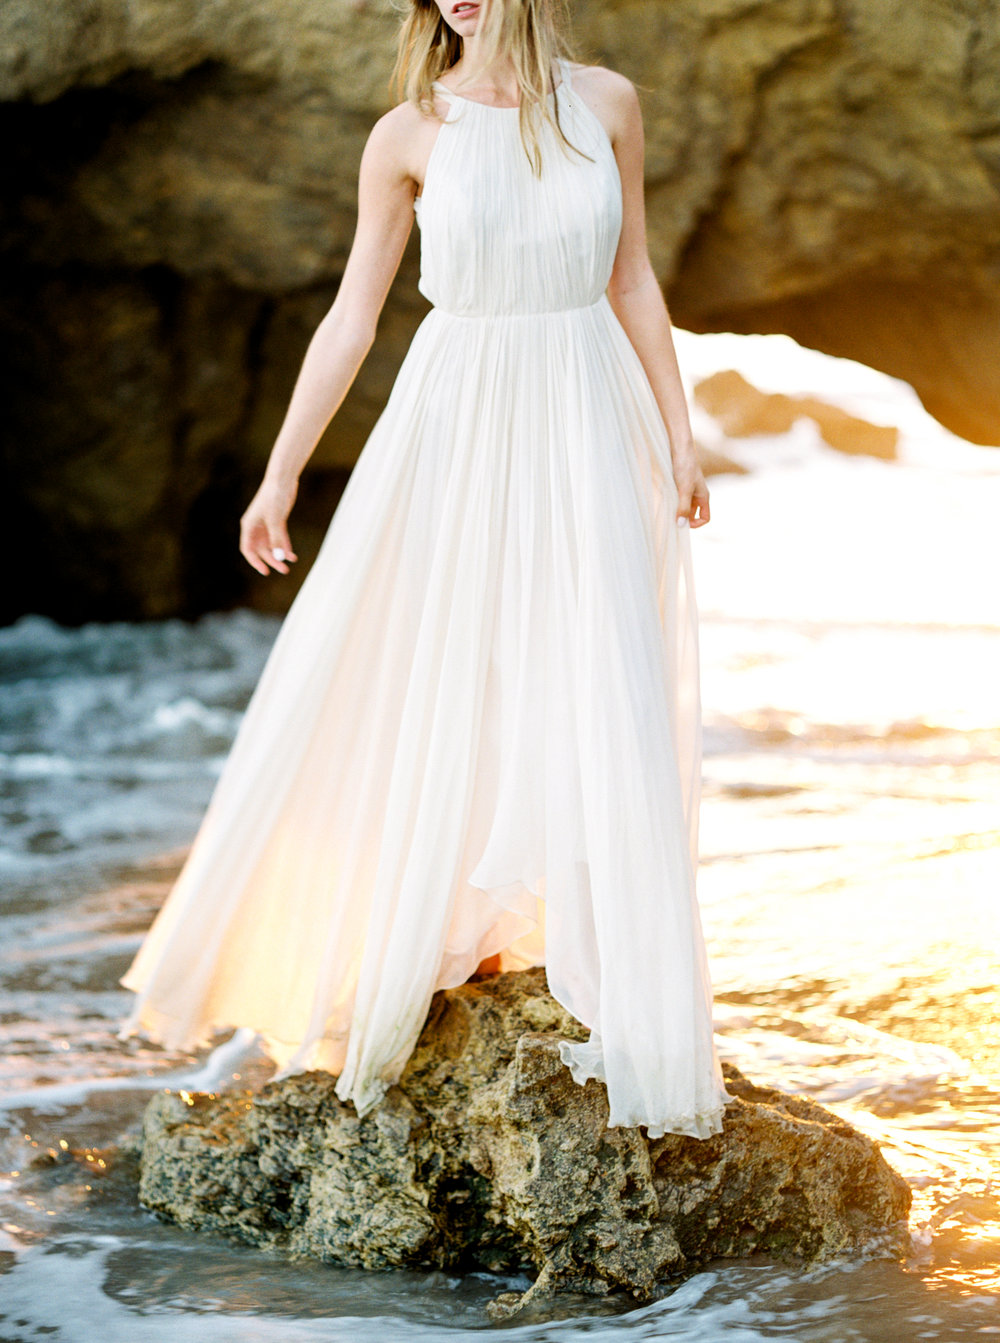 malibu_wedding_bride-83.jpg